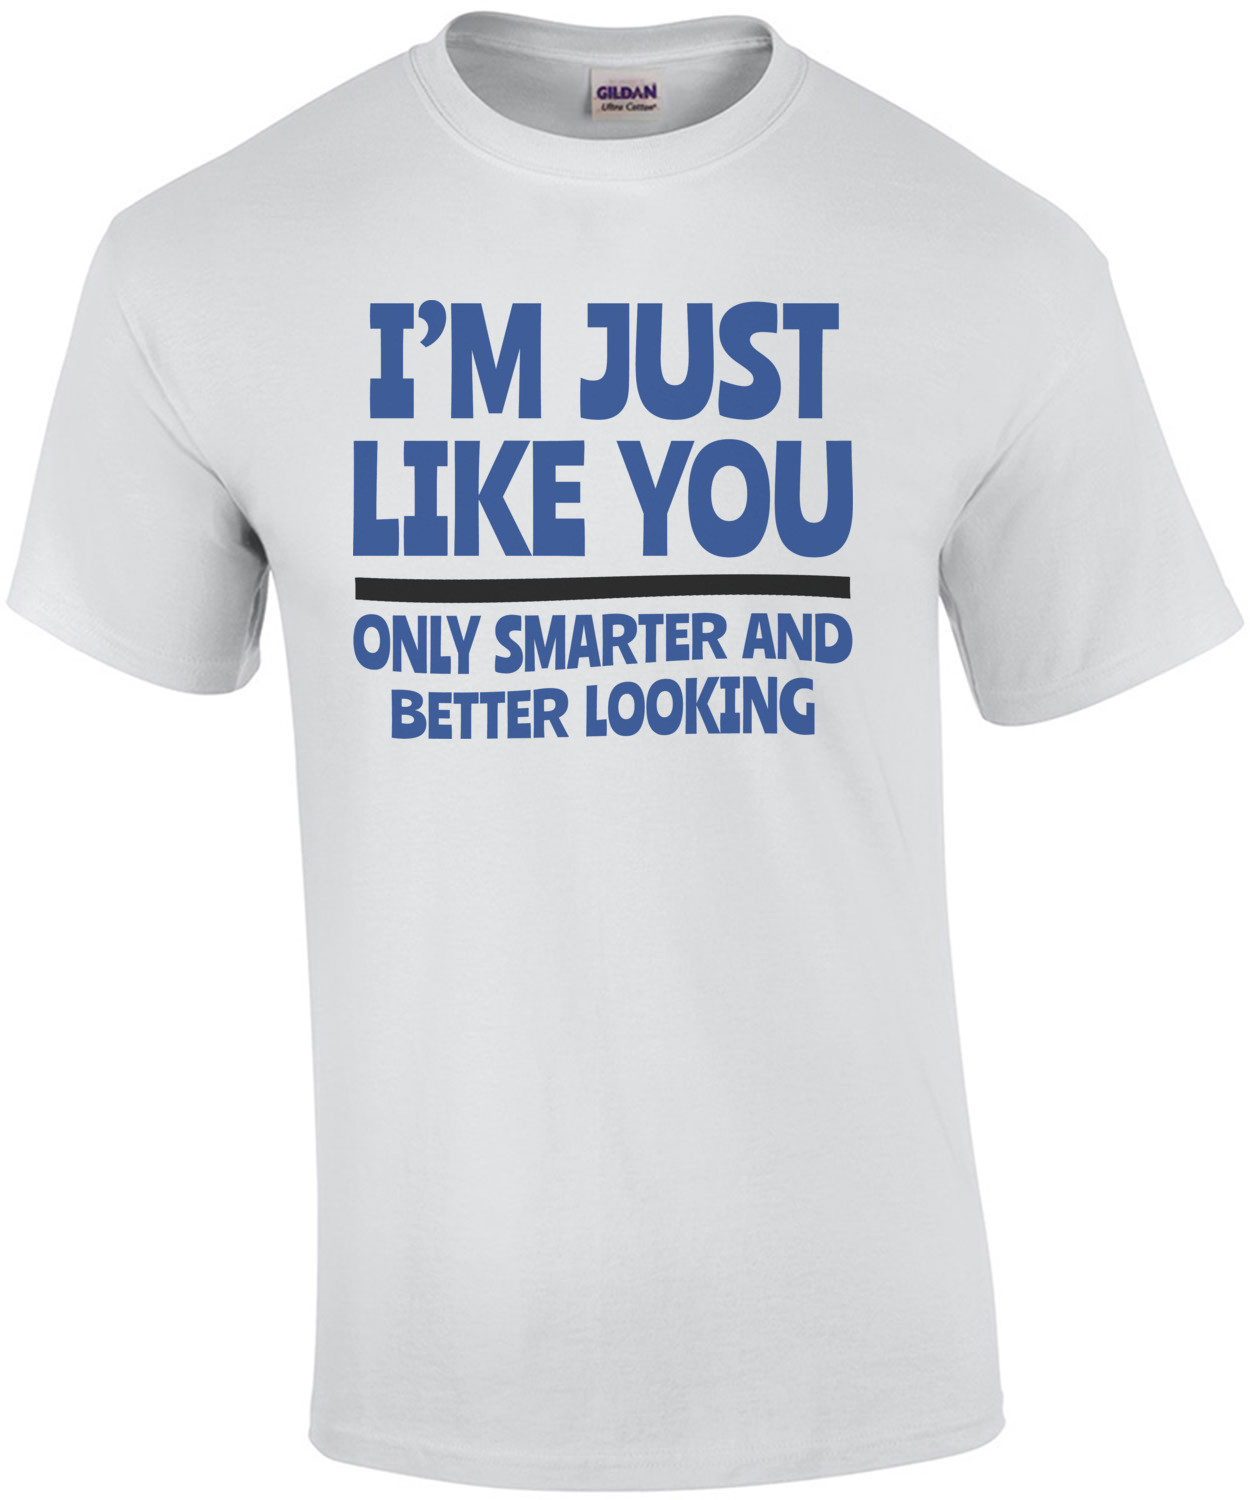 I'm Just Like You... Only Smarter And Better Looking shirt